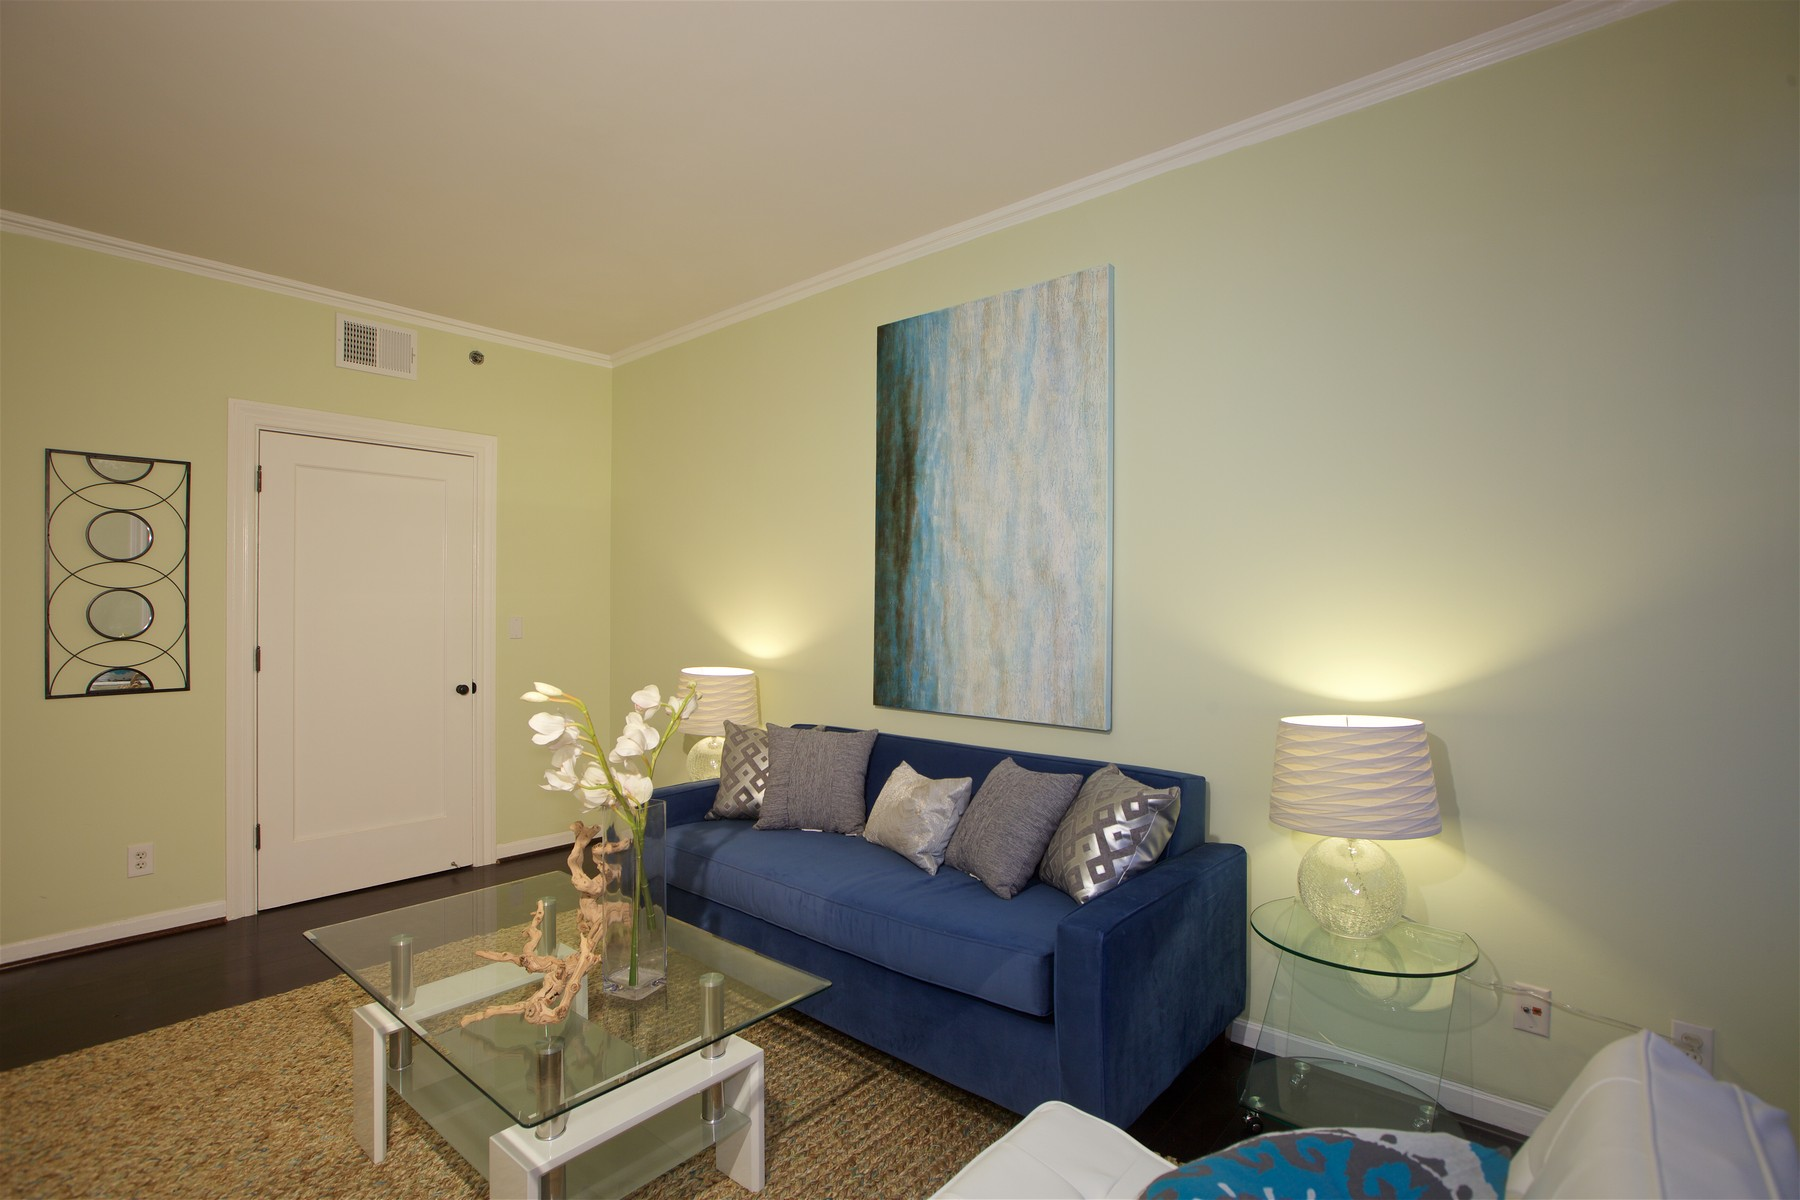 Additional photo for property listing at 702 Ash St, Unit 600  San Diego, California 92101 United States